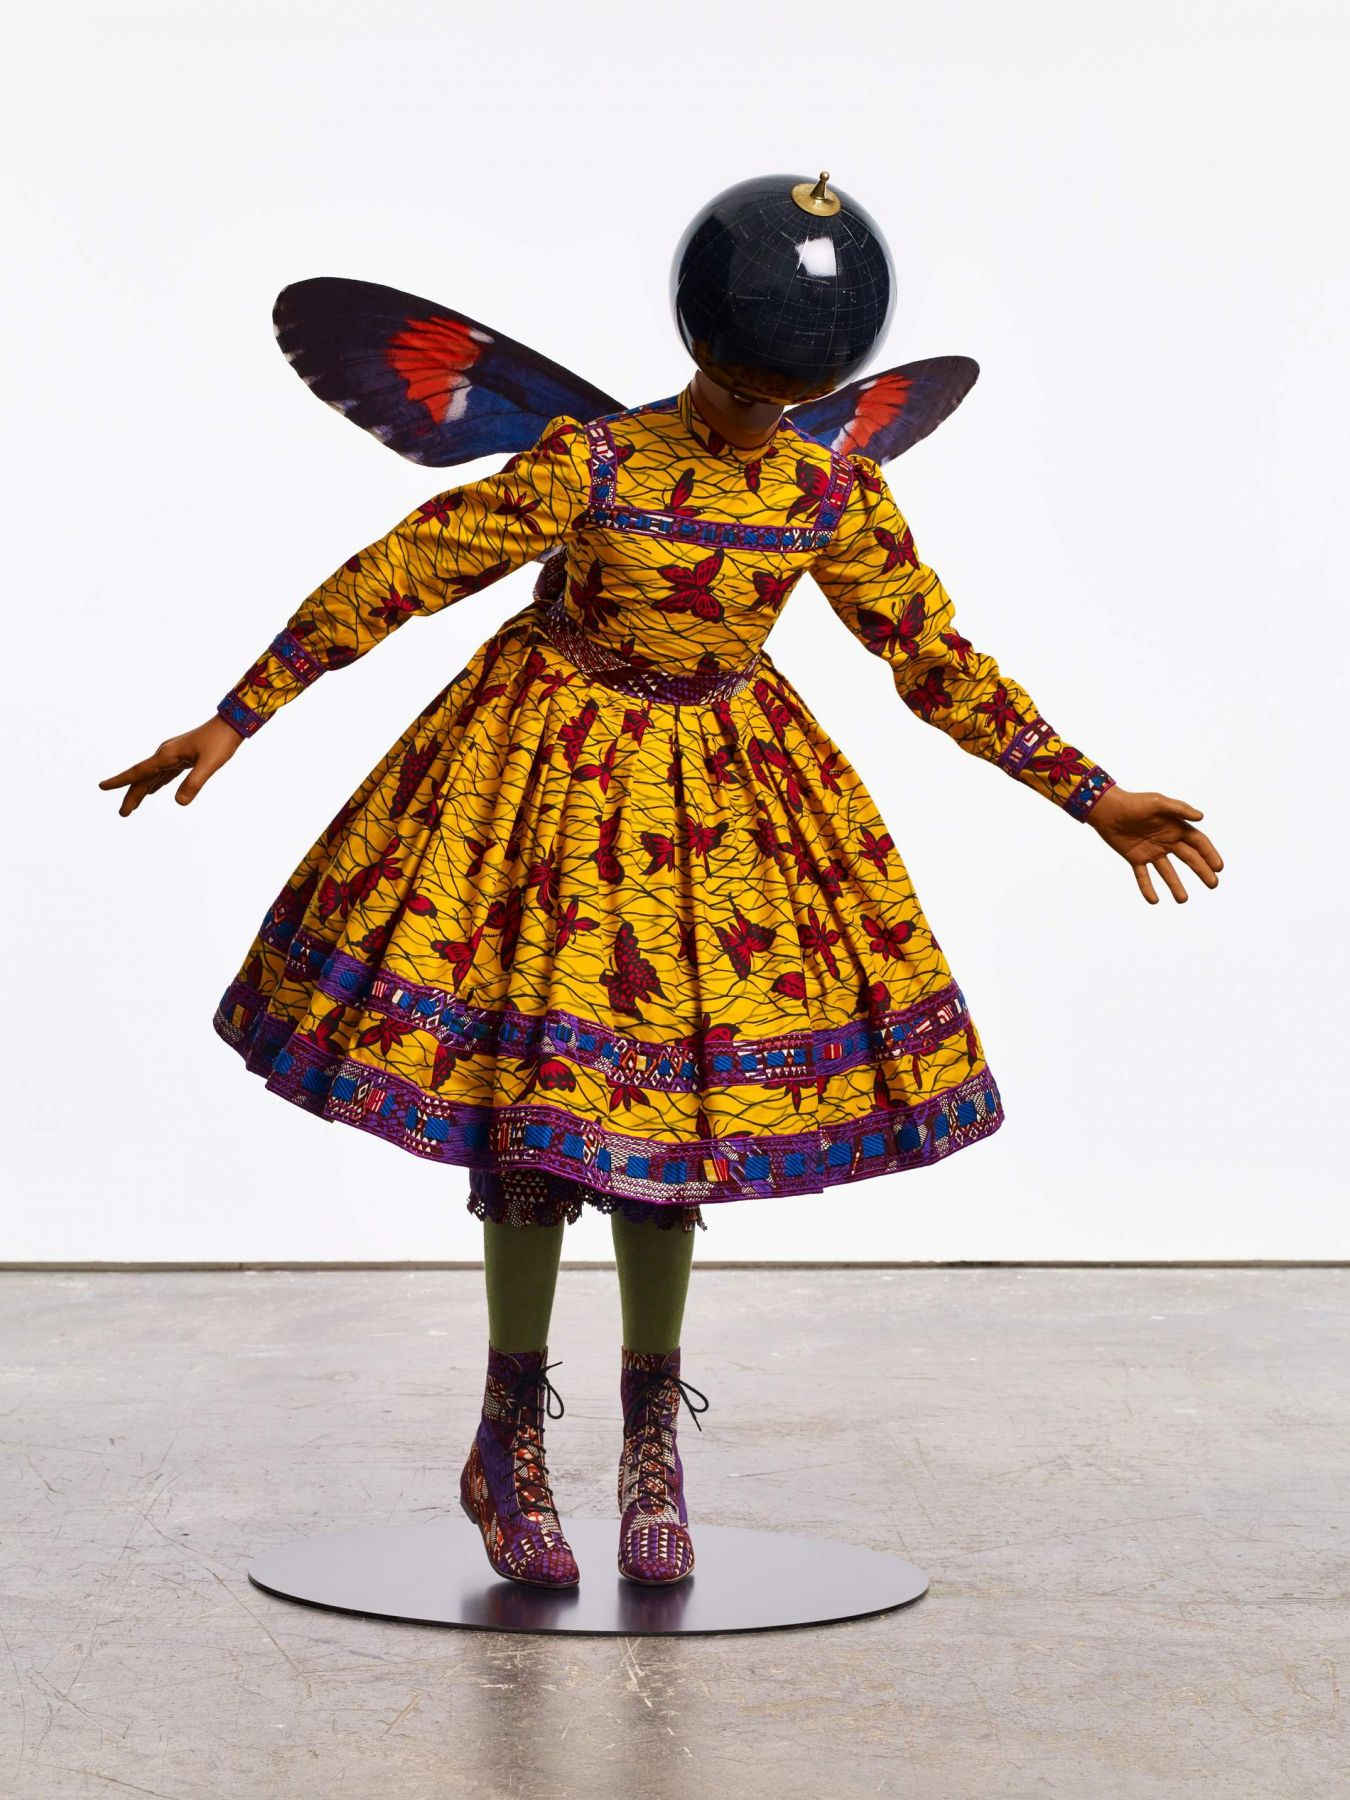 , YINKA SHONIBARE, MBE Butterfly Kid (girl), 2015 Fiberglass mannequin, Dutch wax printed cotton textile, silk, metal, globe and steel baseplate 49 3/16 x 41 5/16 x 29 7/8 in. (125 x 105 x 76 cm)